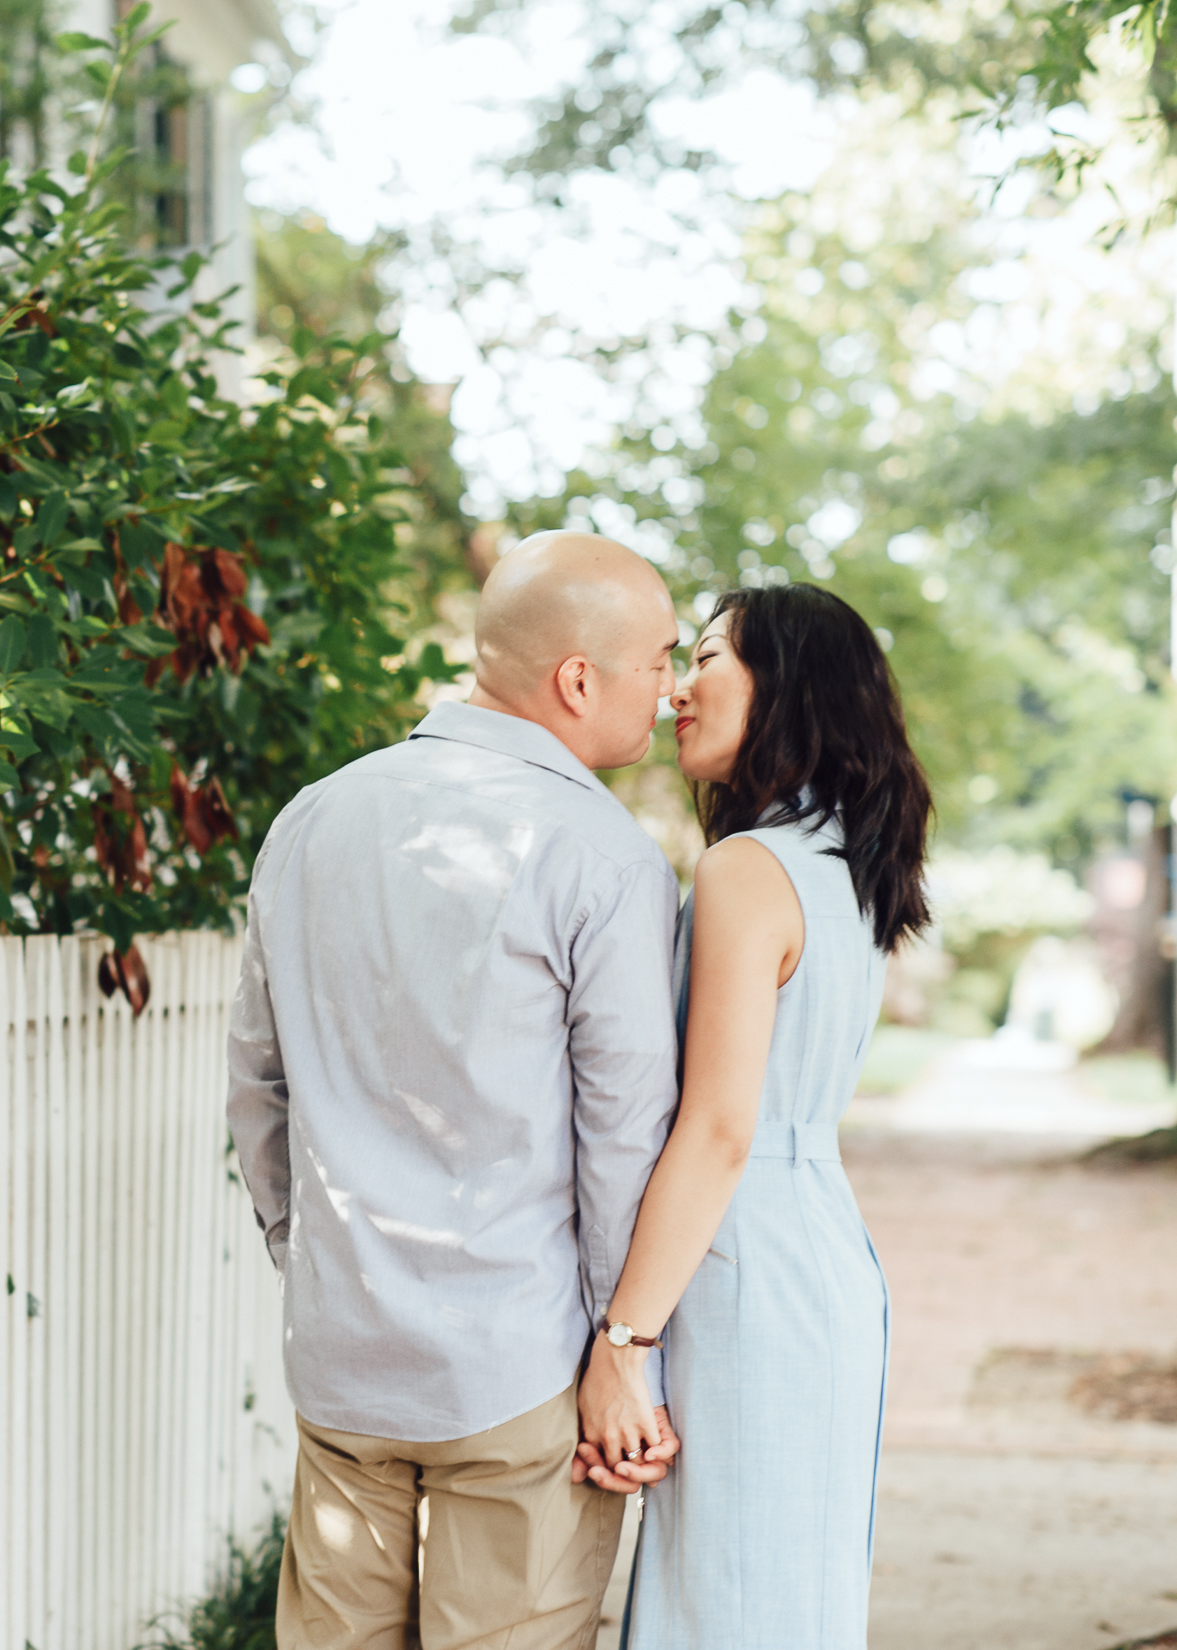 engagement_downtown_fredericksburg_virginiaweddingphotographer_youseephotography_HelenPaul (6).jpg